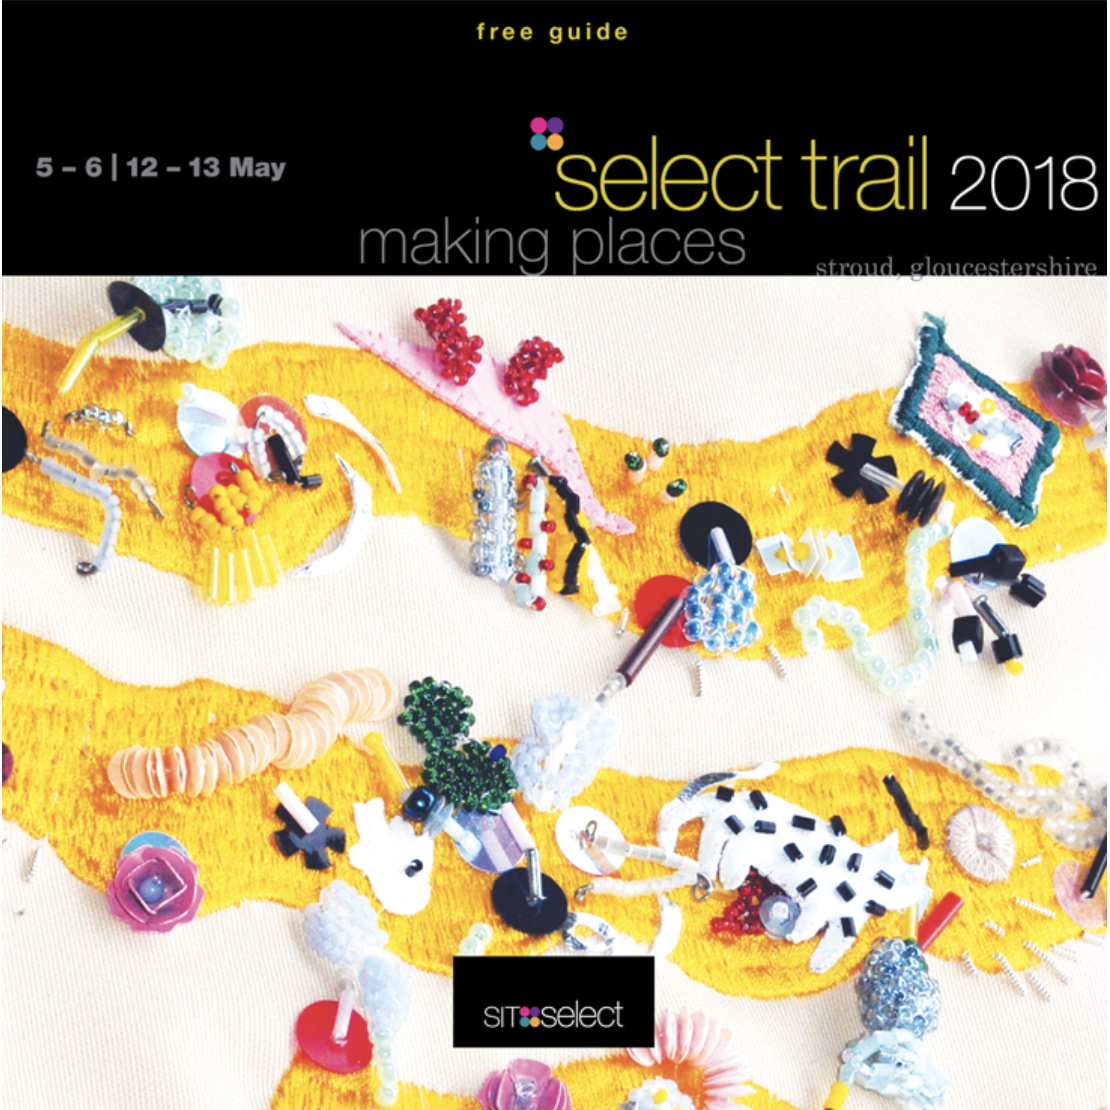 Select Trail Brochure launch